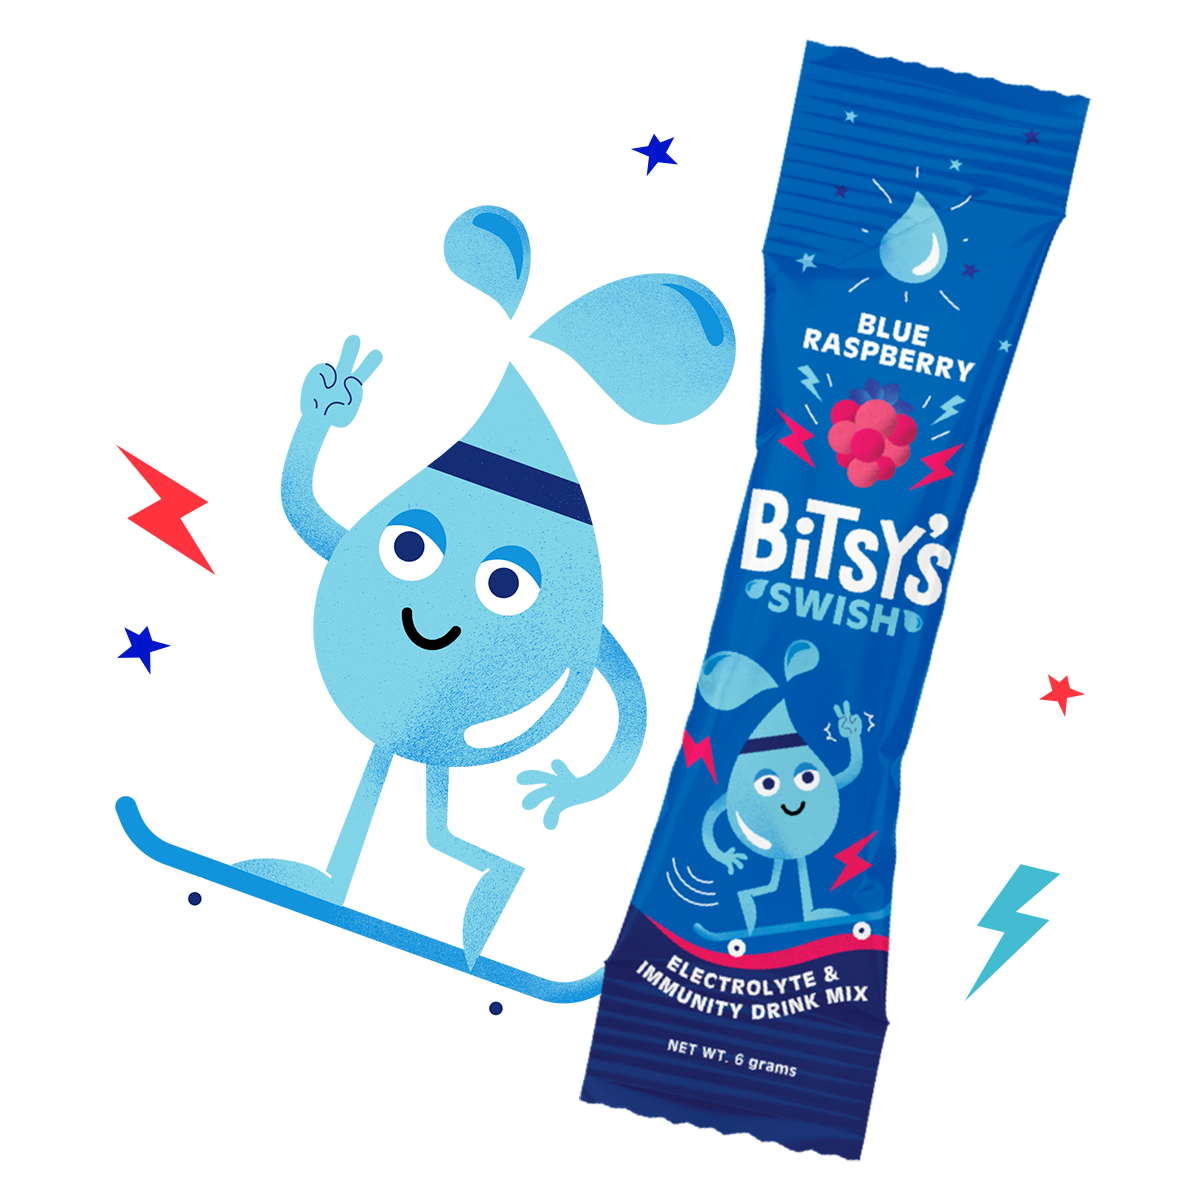 Bitsy's Blue Raspberry Swish character and packet